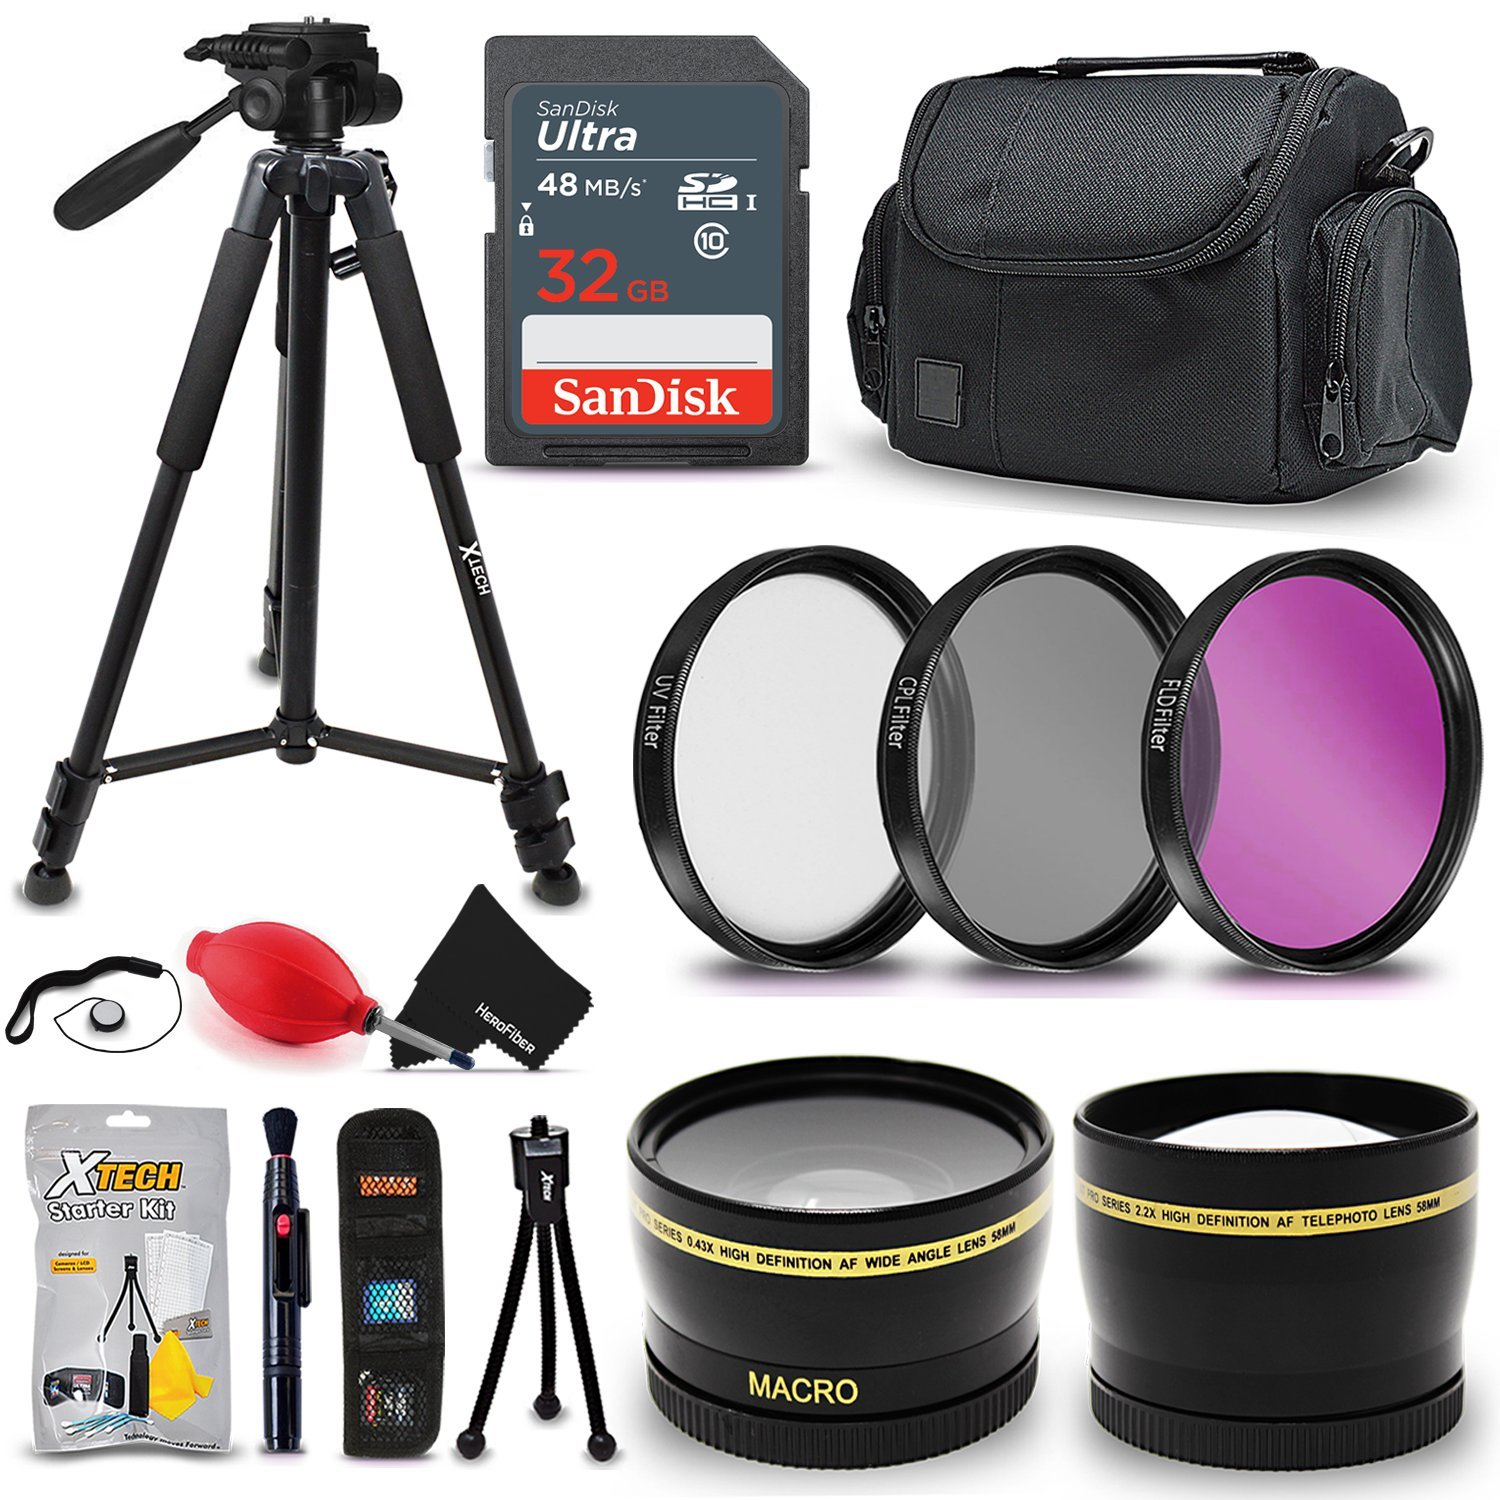 Professional 52MM Accessories Bundle Kit for Nikon D3100 D3200 D3300 D5000 D5100 D5200 D5300 D7000 D7100 D7200 & DSLR Cameras, with 32GB SD Memory card, tripod, case and more